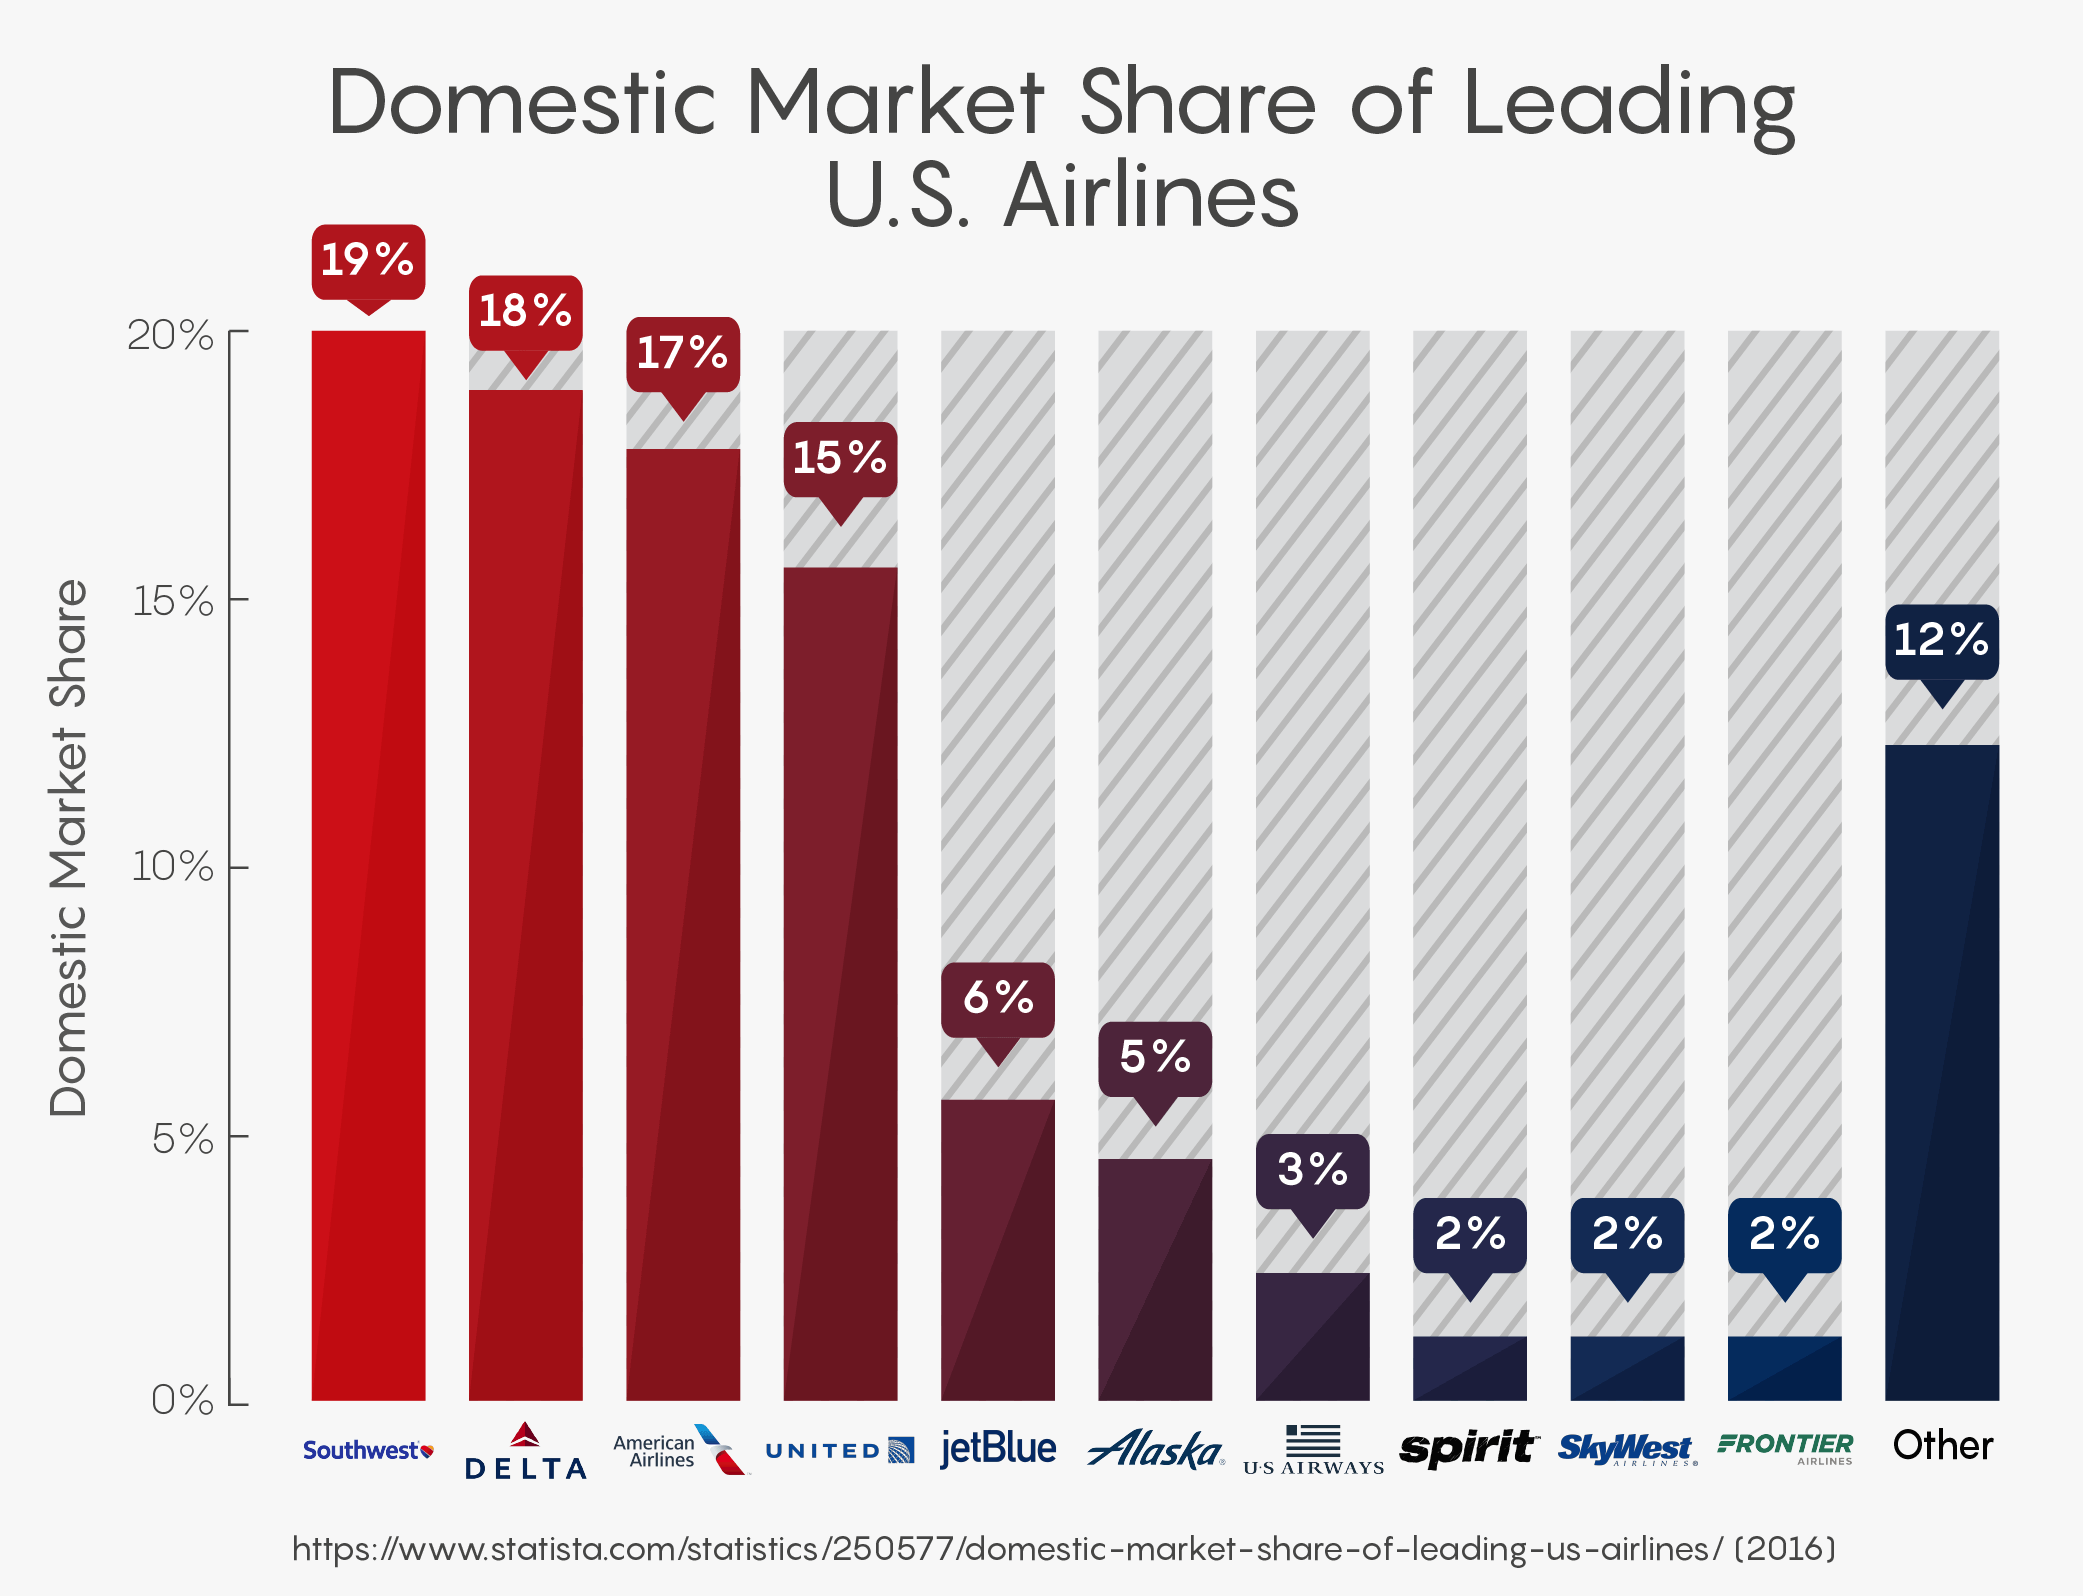 Domestic Market Share of Leading U.S. Airlines